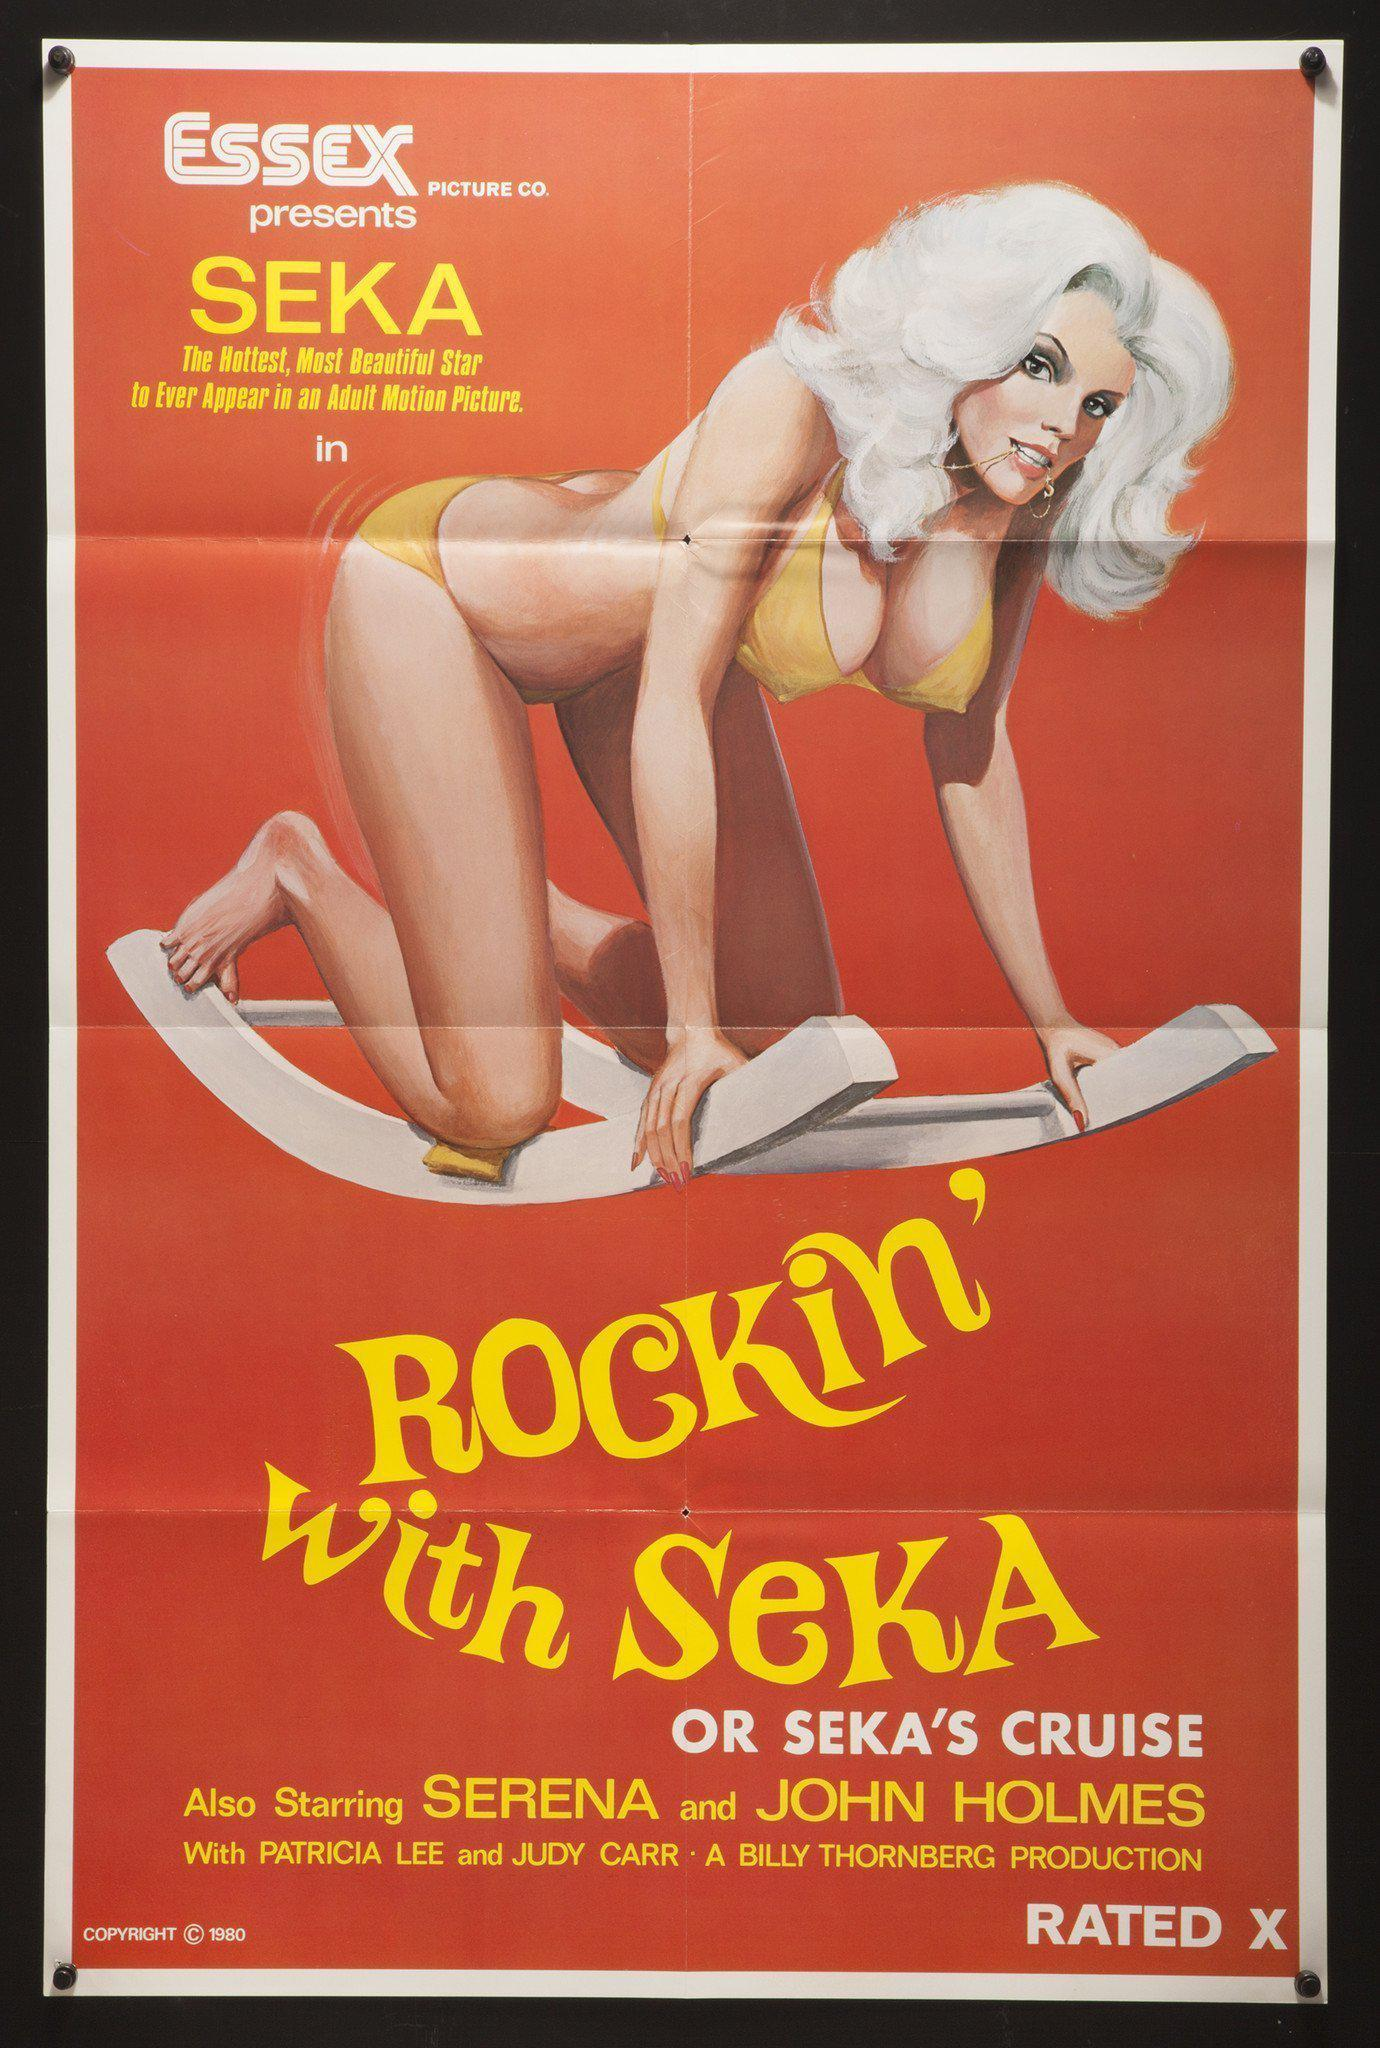 Rockin With Seka (or Seka's Cruise) 1 Sheet (27x41) Original Vintage Movie Poster